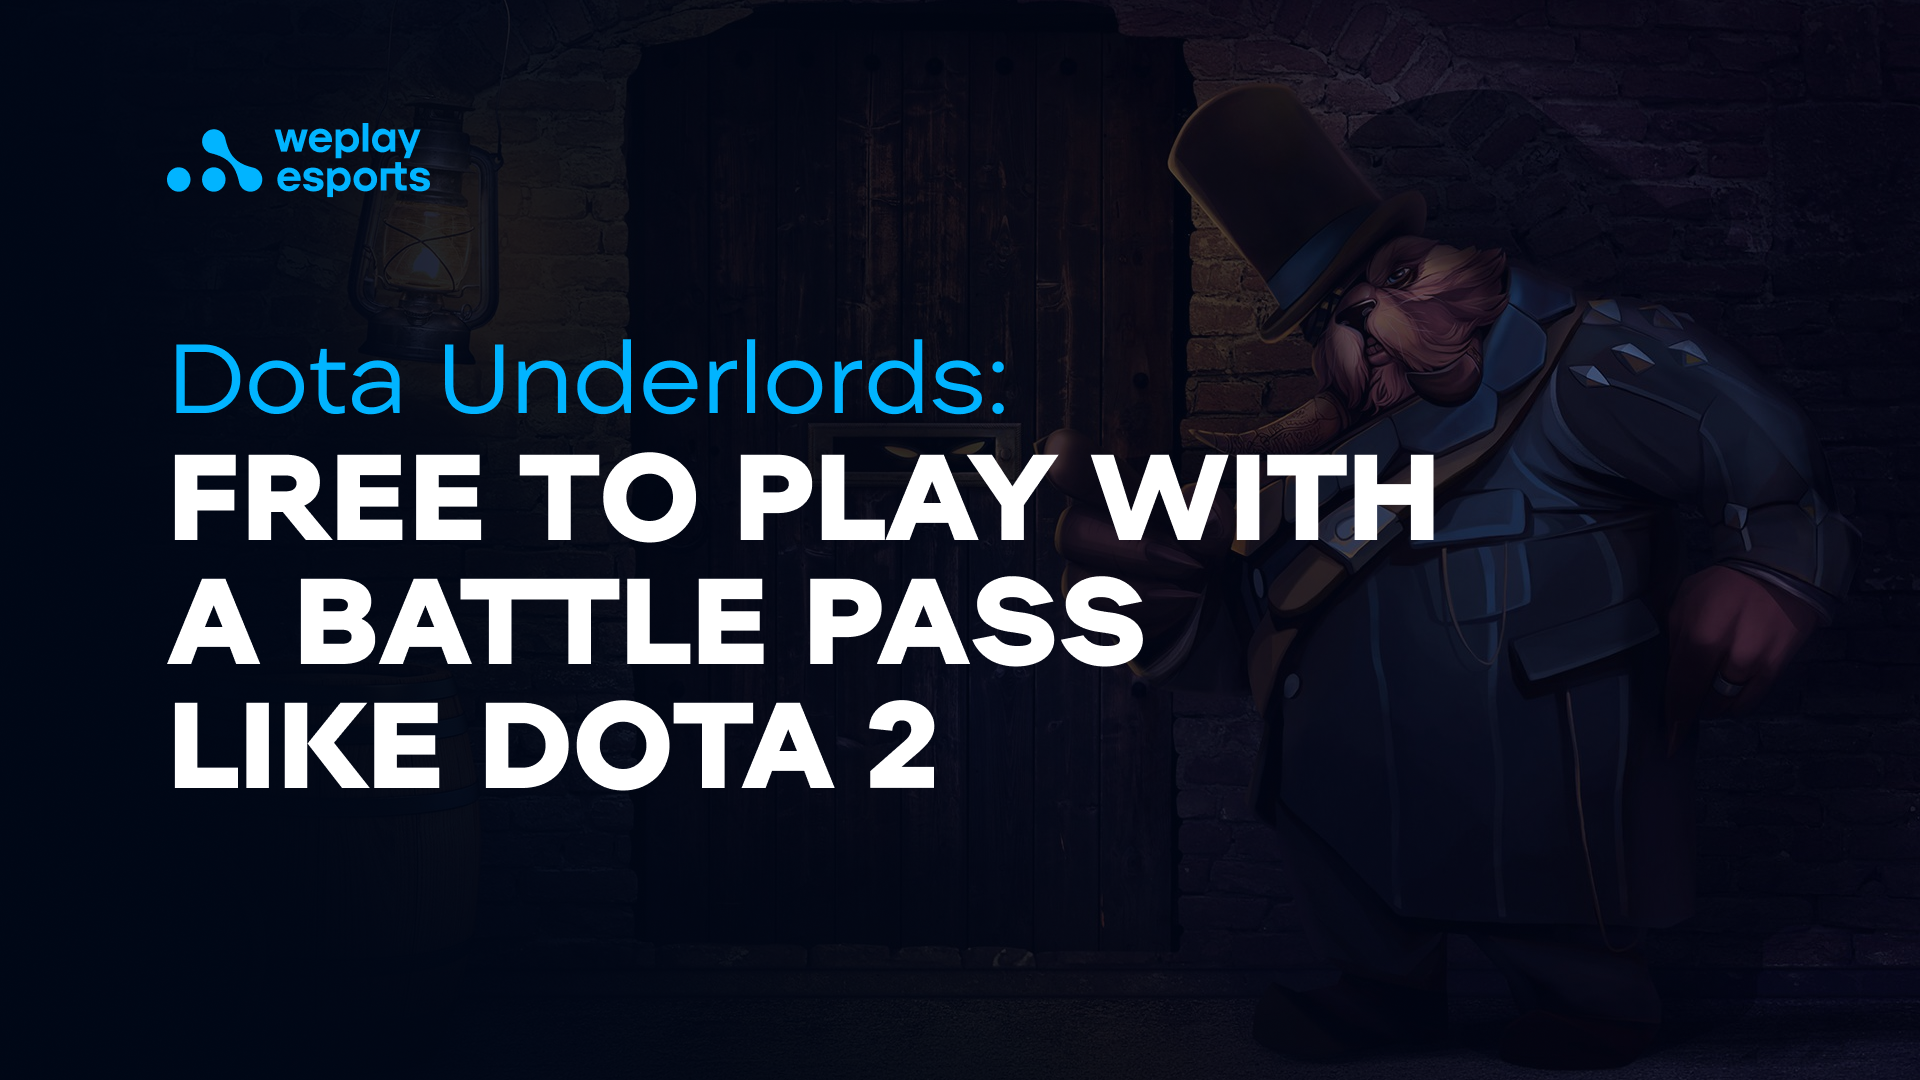 Dota Underlords: Free to play with a Battle Pass like Dota 2